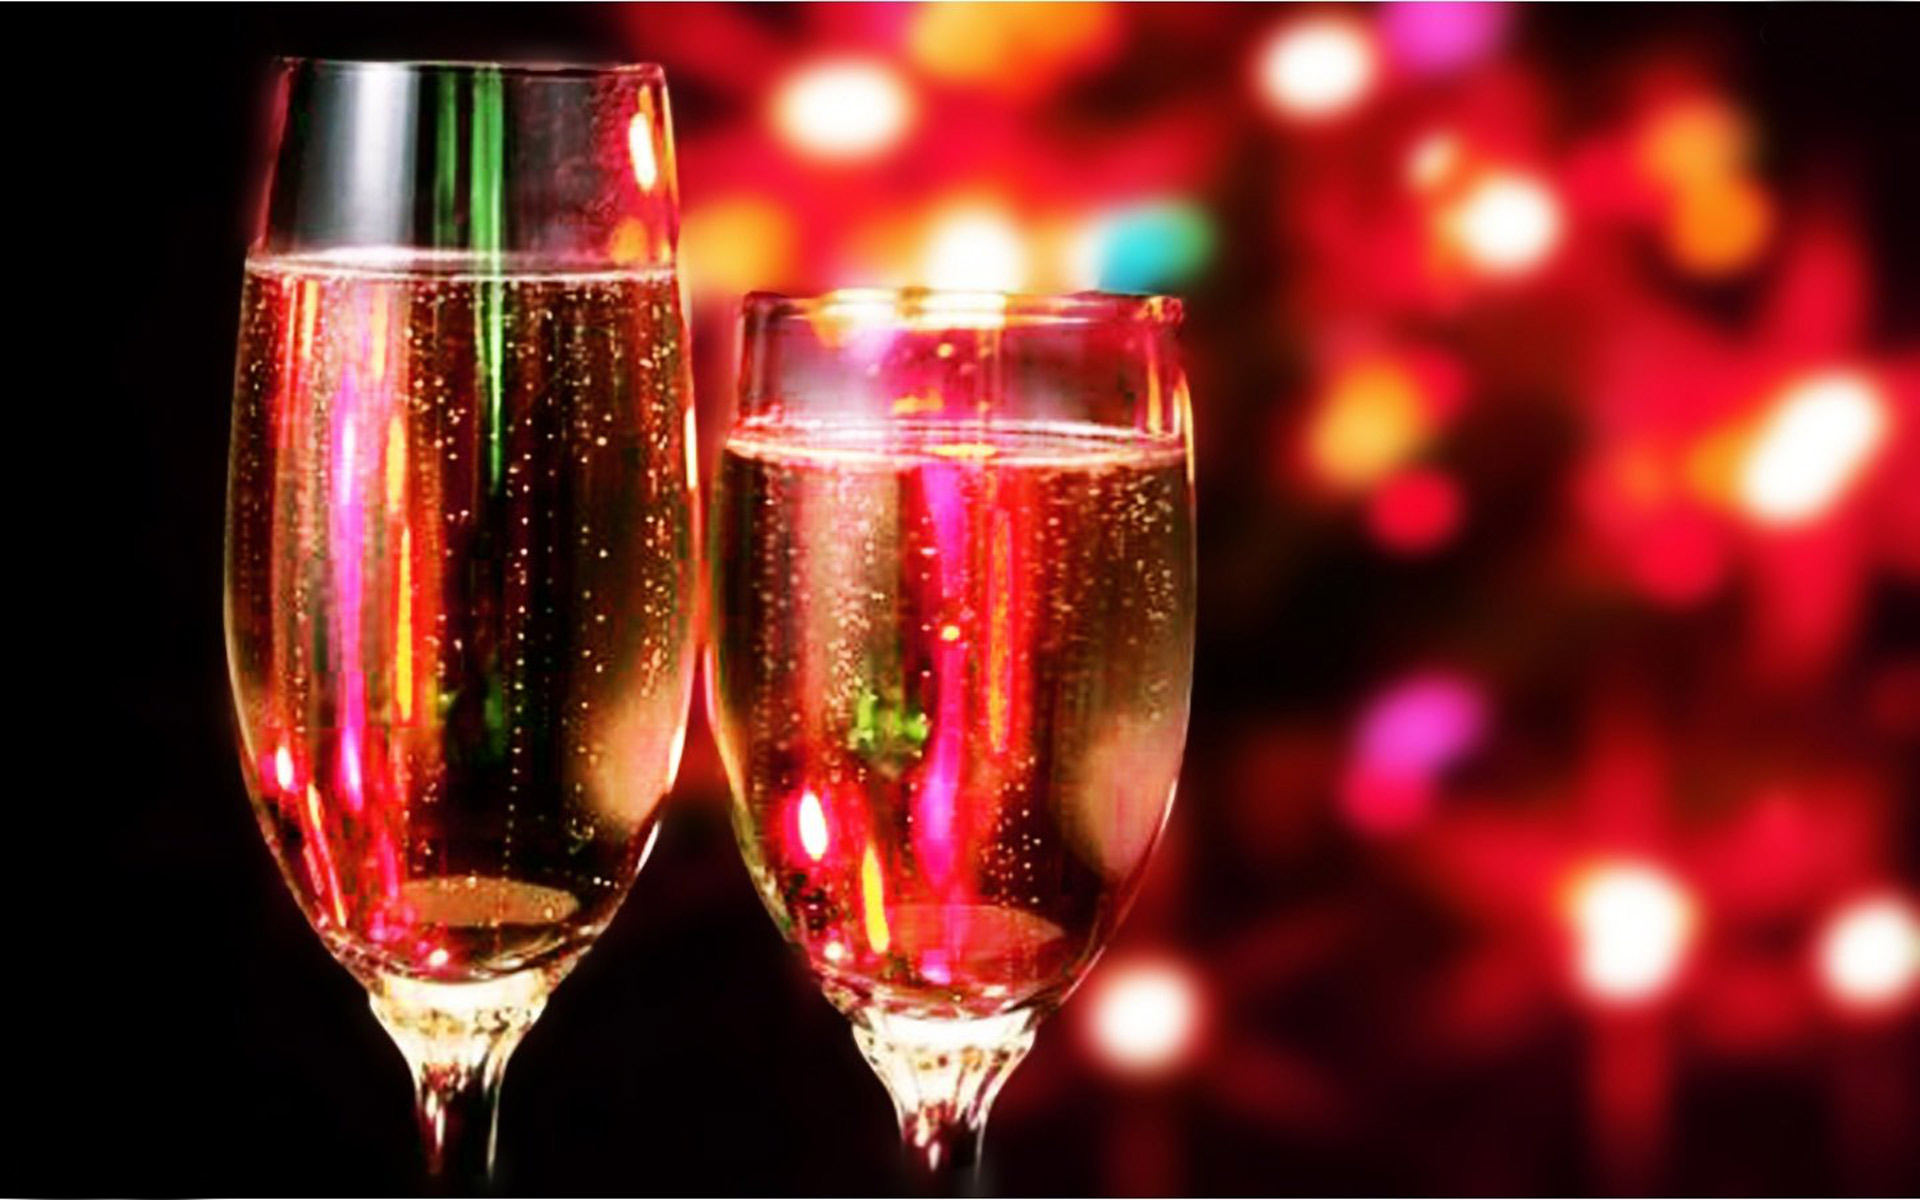 Outstanding New Year Wallpaper for Impfashion All 1920x1200px